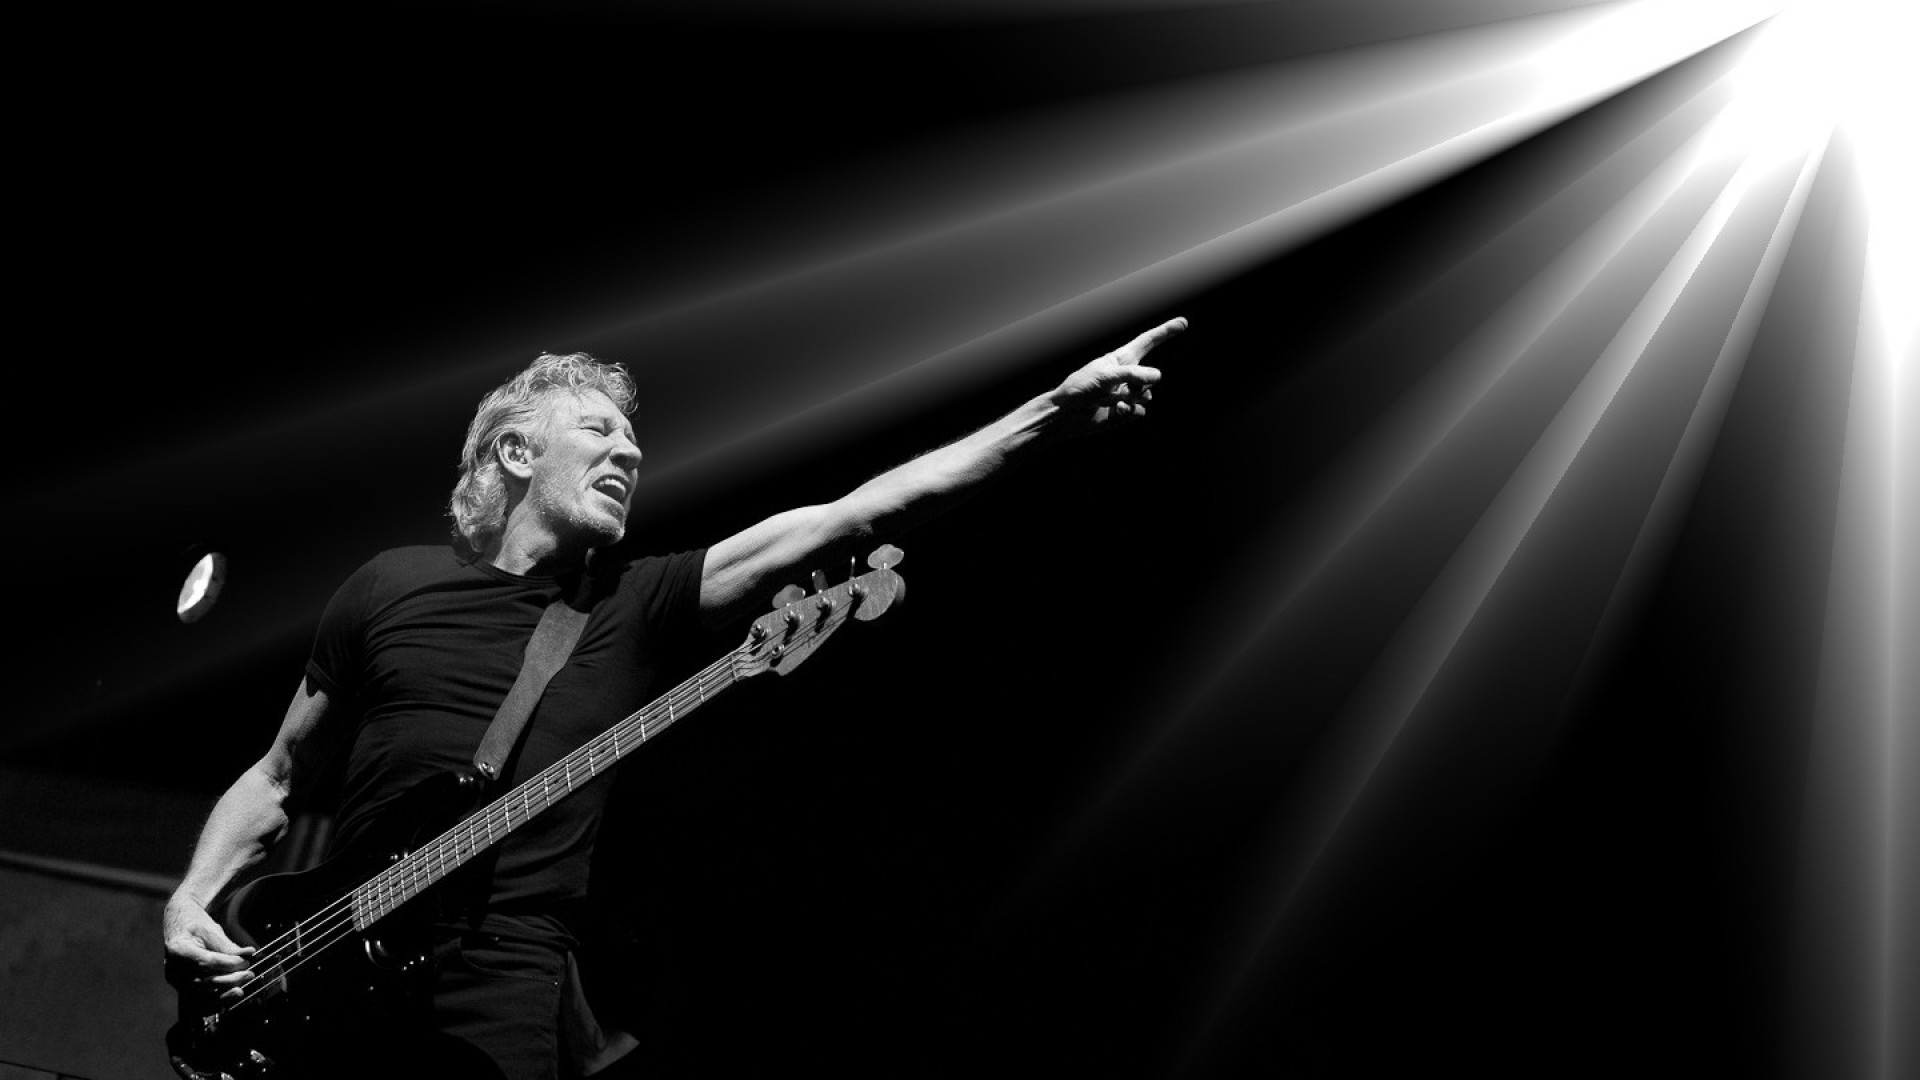 Roger Waters backdrop wallpaper